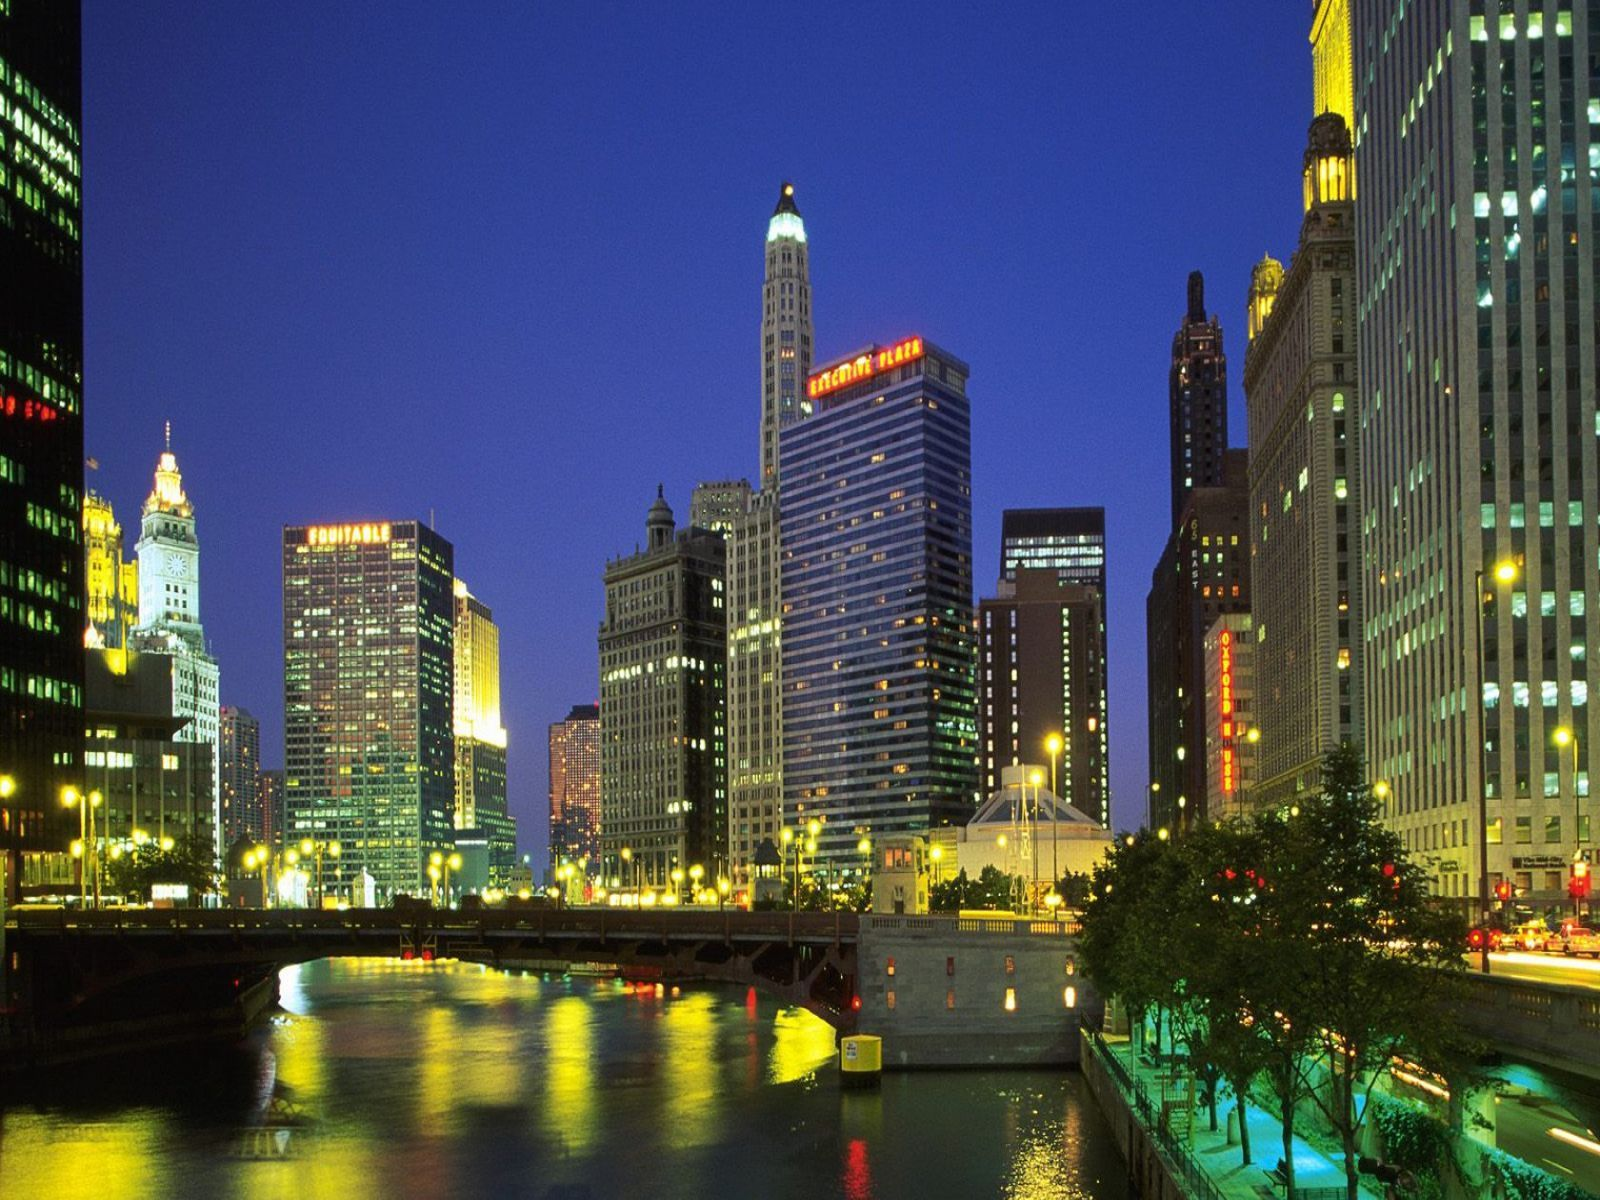 chicago bears Chicago Bears Downtown 1600x1200px